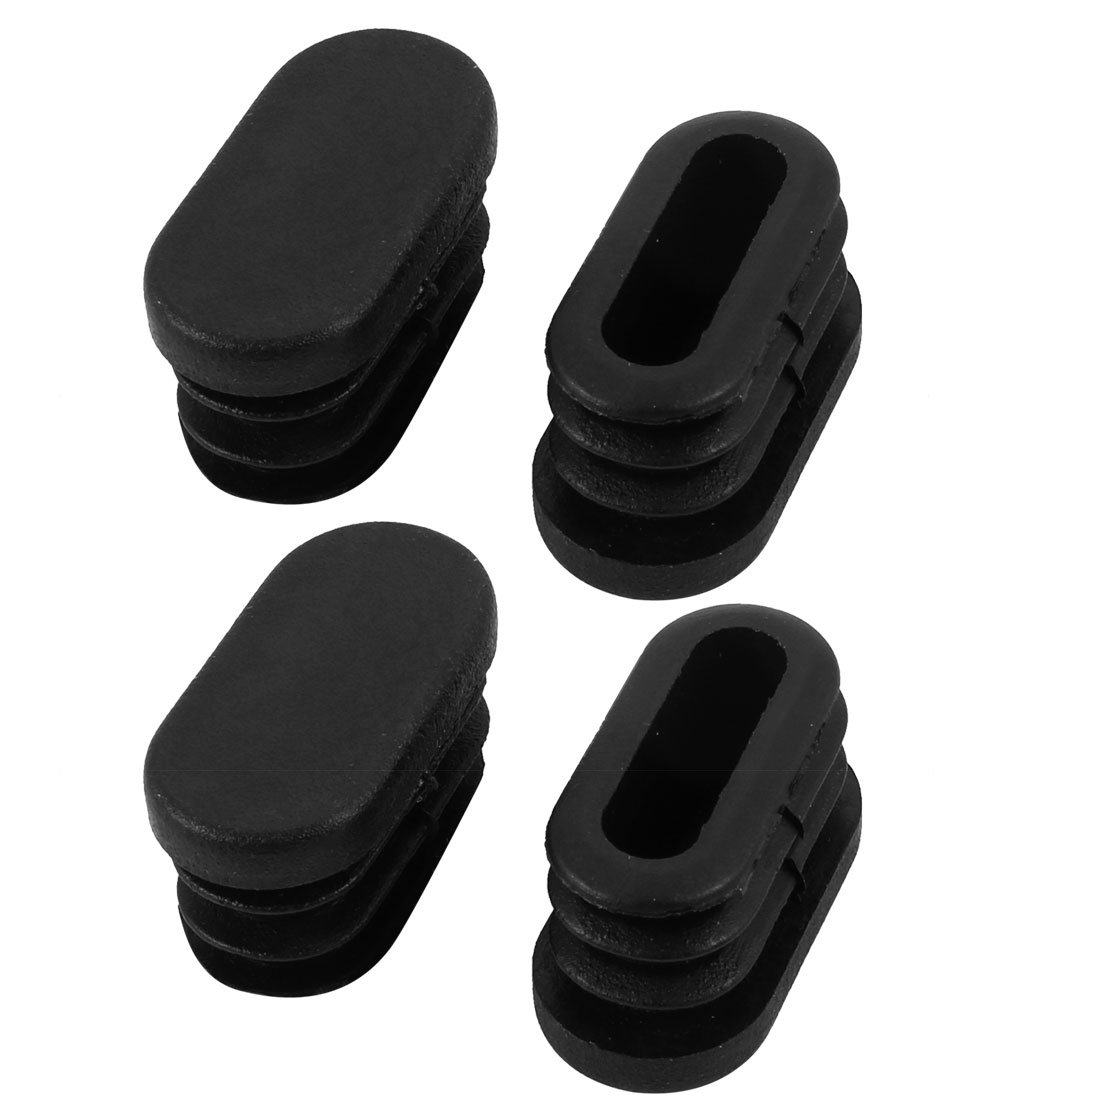 sourcingmap 30mmx15mm Plastic Non Slip Oval Chair Table Leg Protectors Cap Tube Insert 4pcs